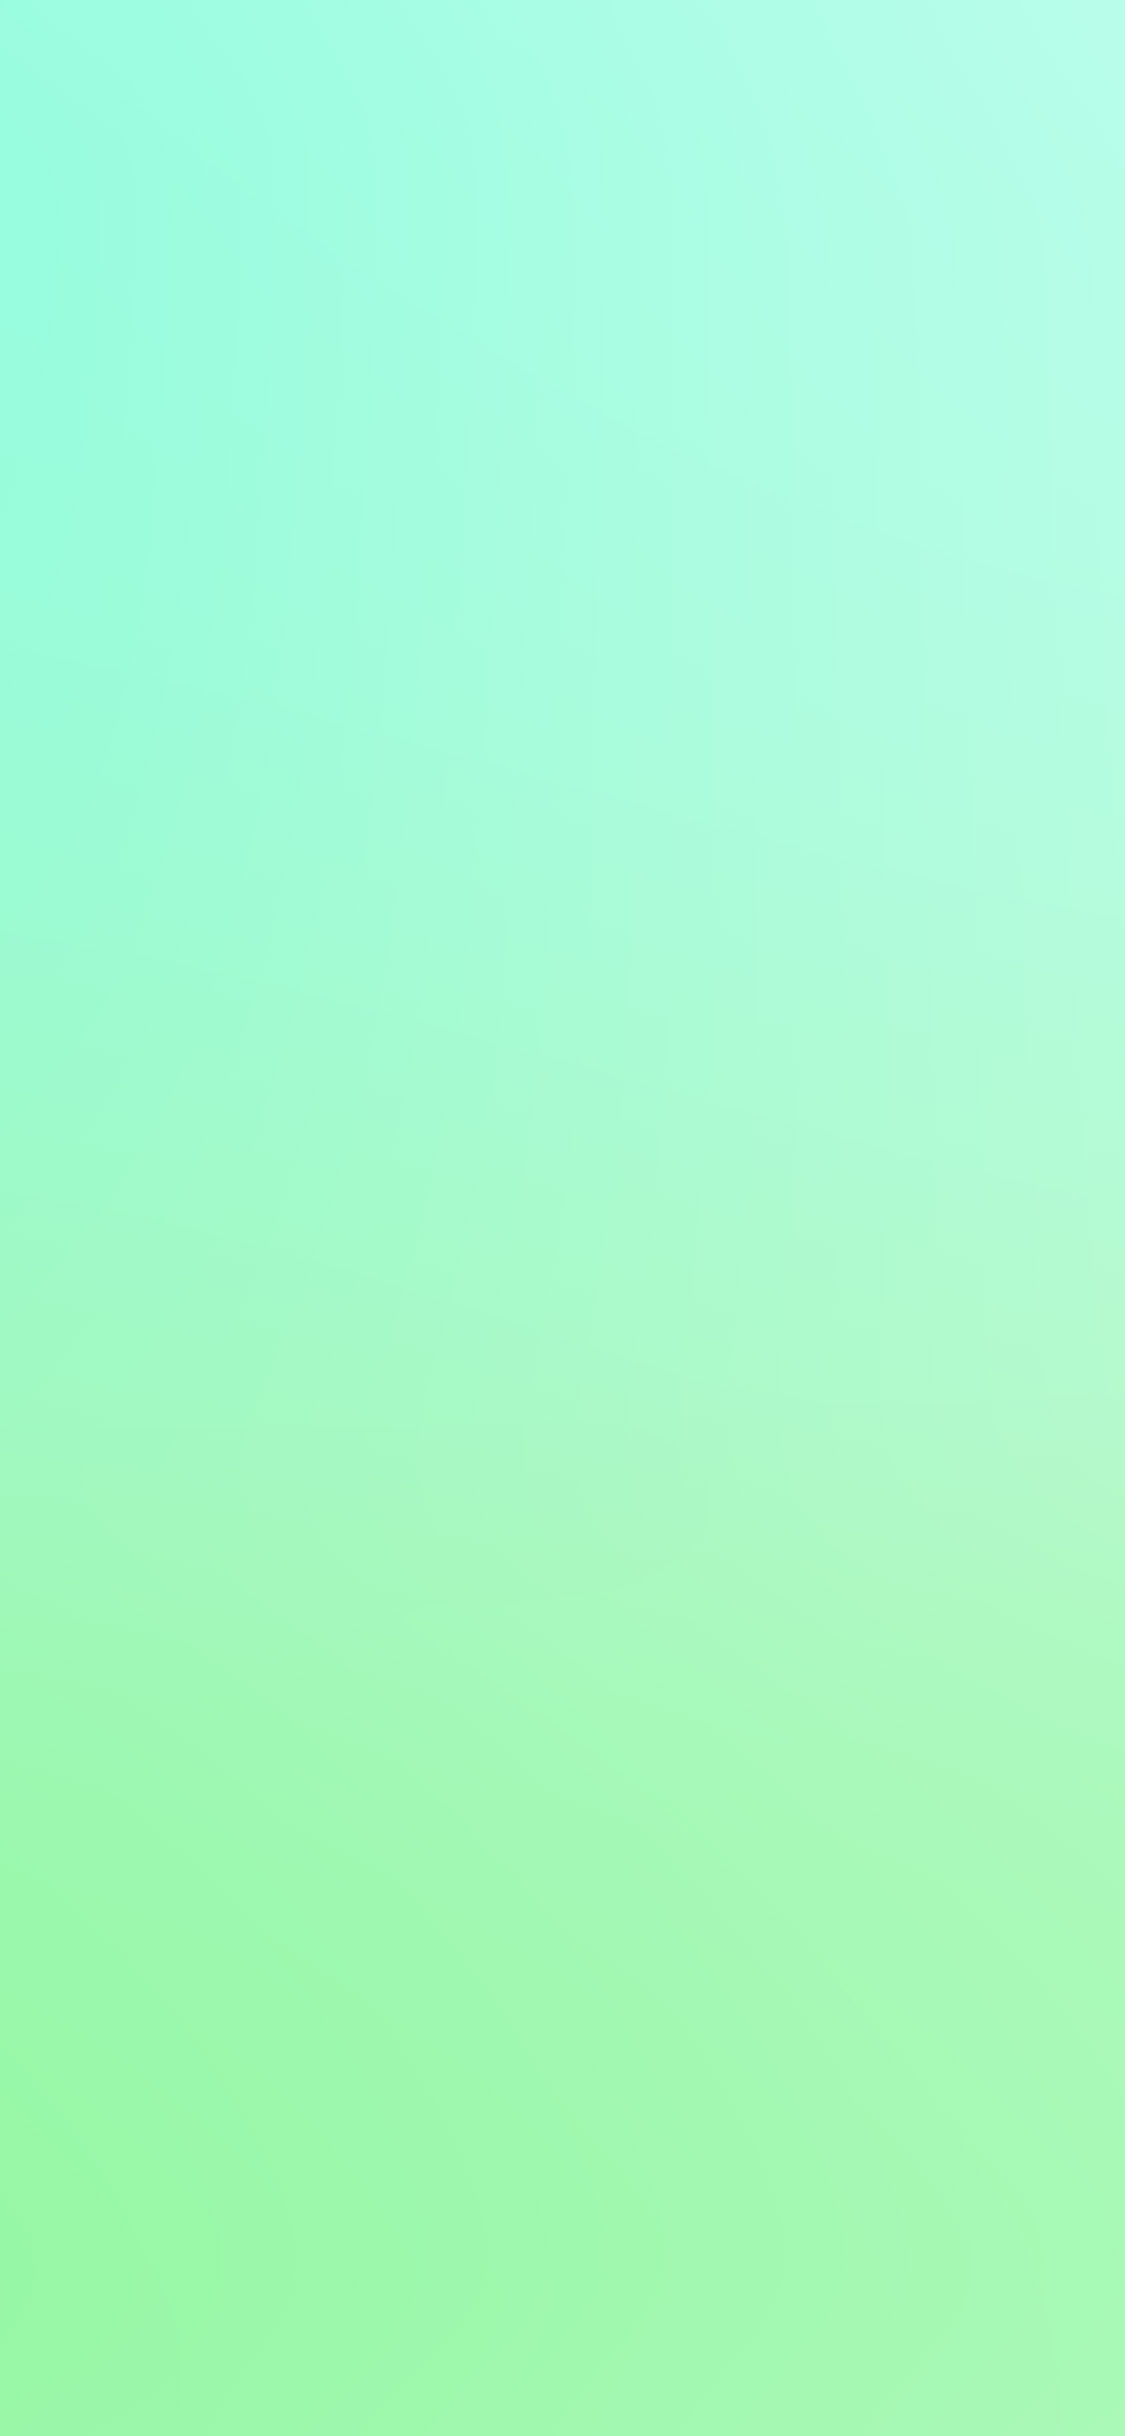 iPhone 11 wallpaper cool-pastel-blur-gradation-mint-green-iphone-X